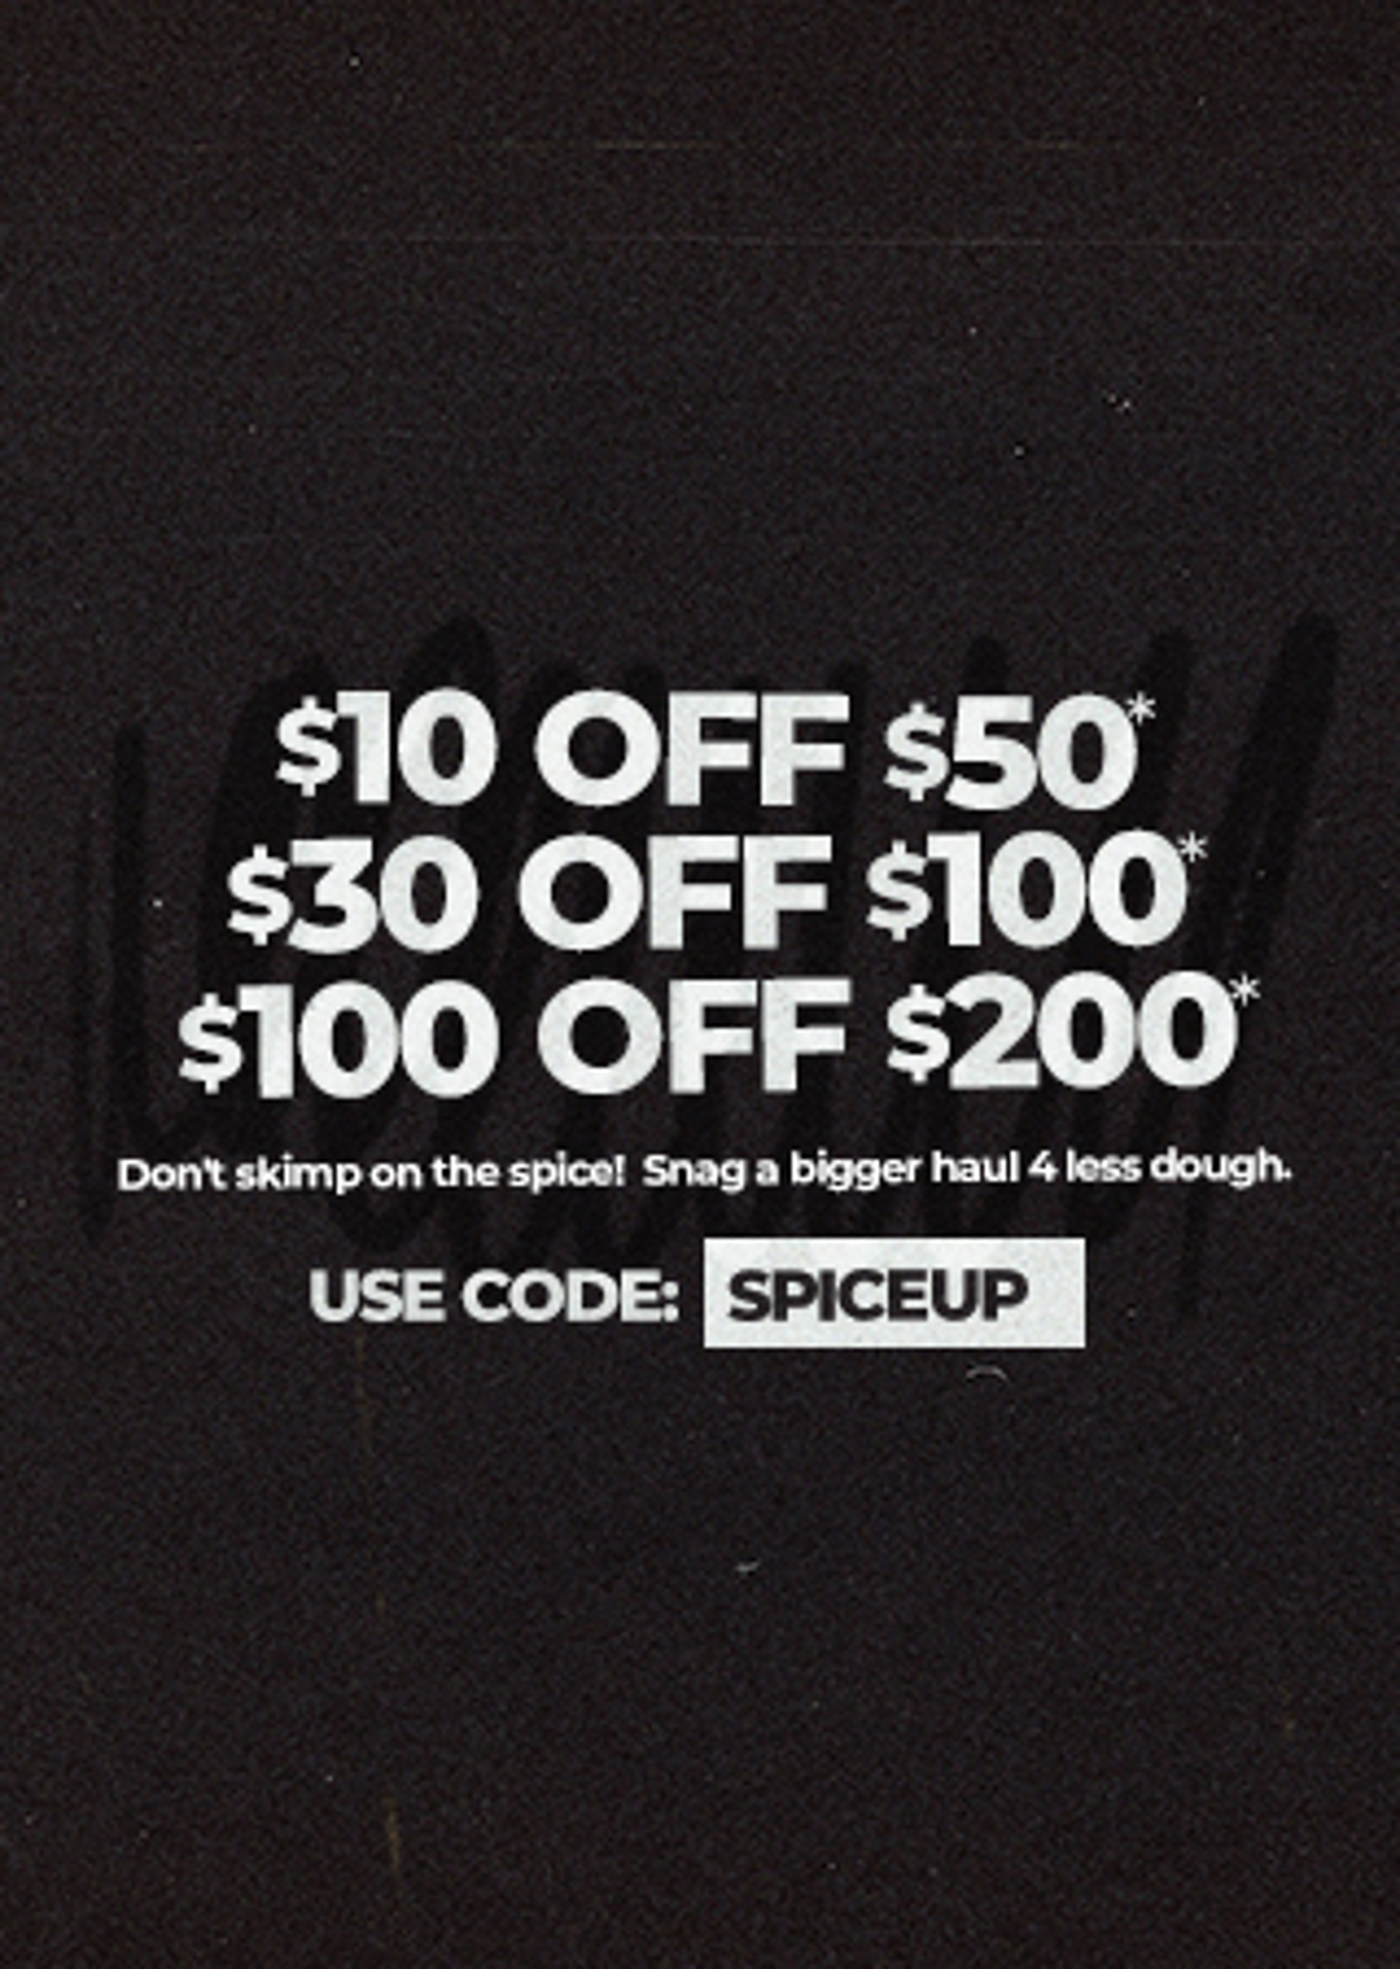 Limited Time Only I Online ExclusiveTake $10 off $50, $30 off $100, OR $100 off $200Don't skimp on the spice! Snag a bigger haul 4 less dough. Use code: SPICEUP